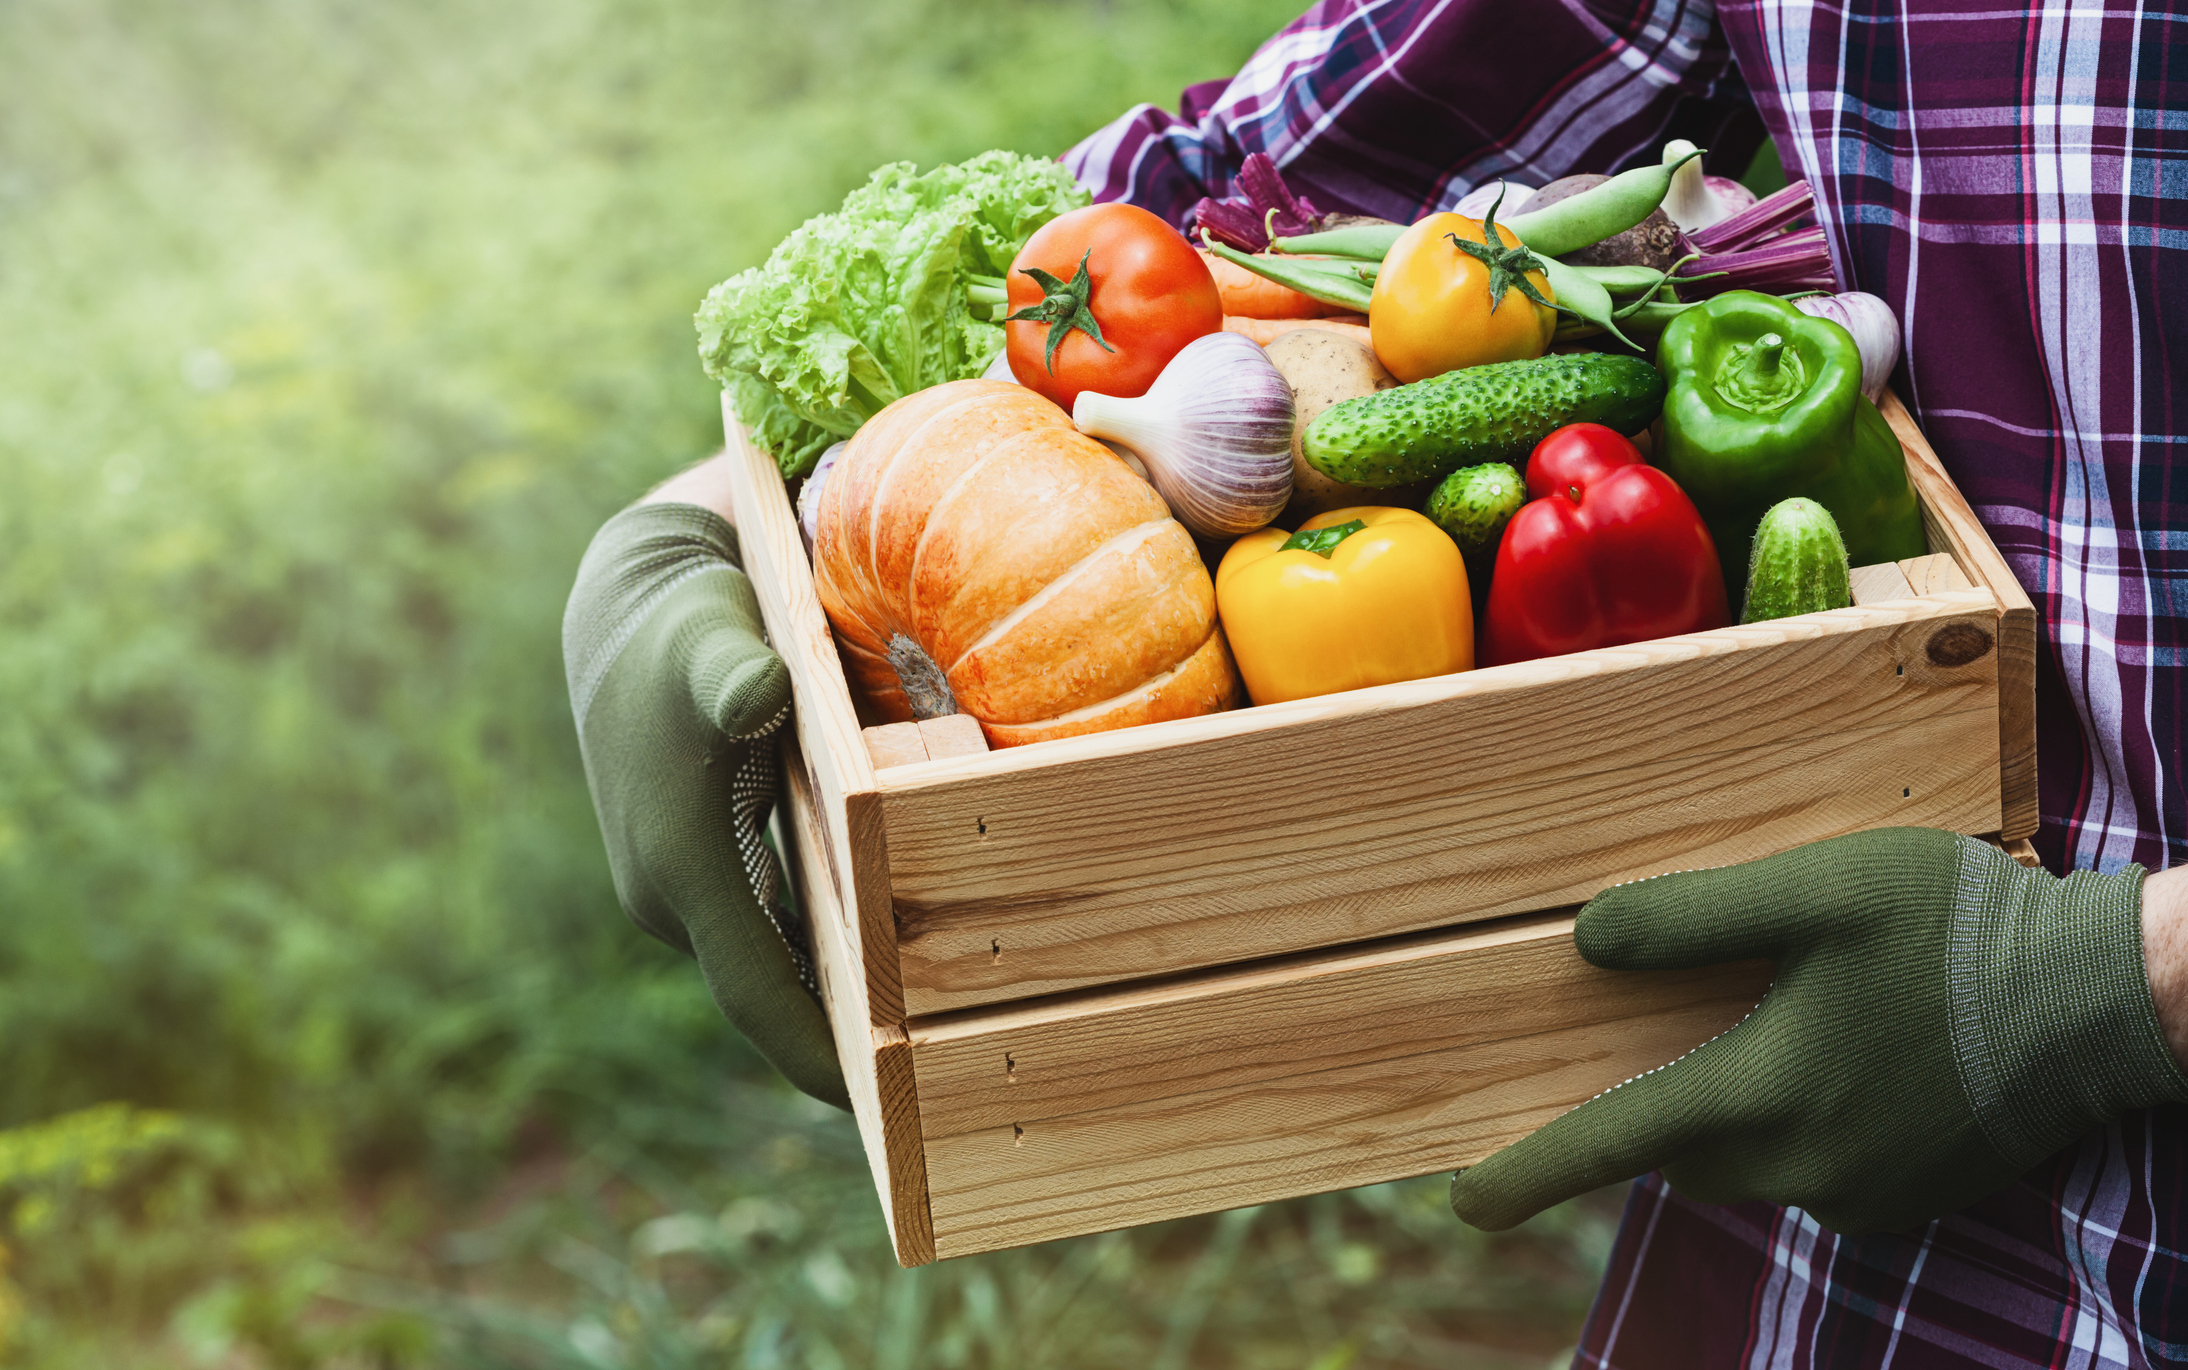 Farmer holds wooden box with vegetables from the garden